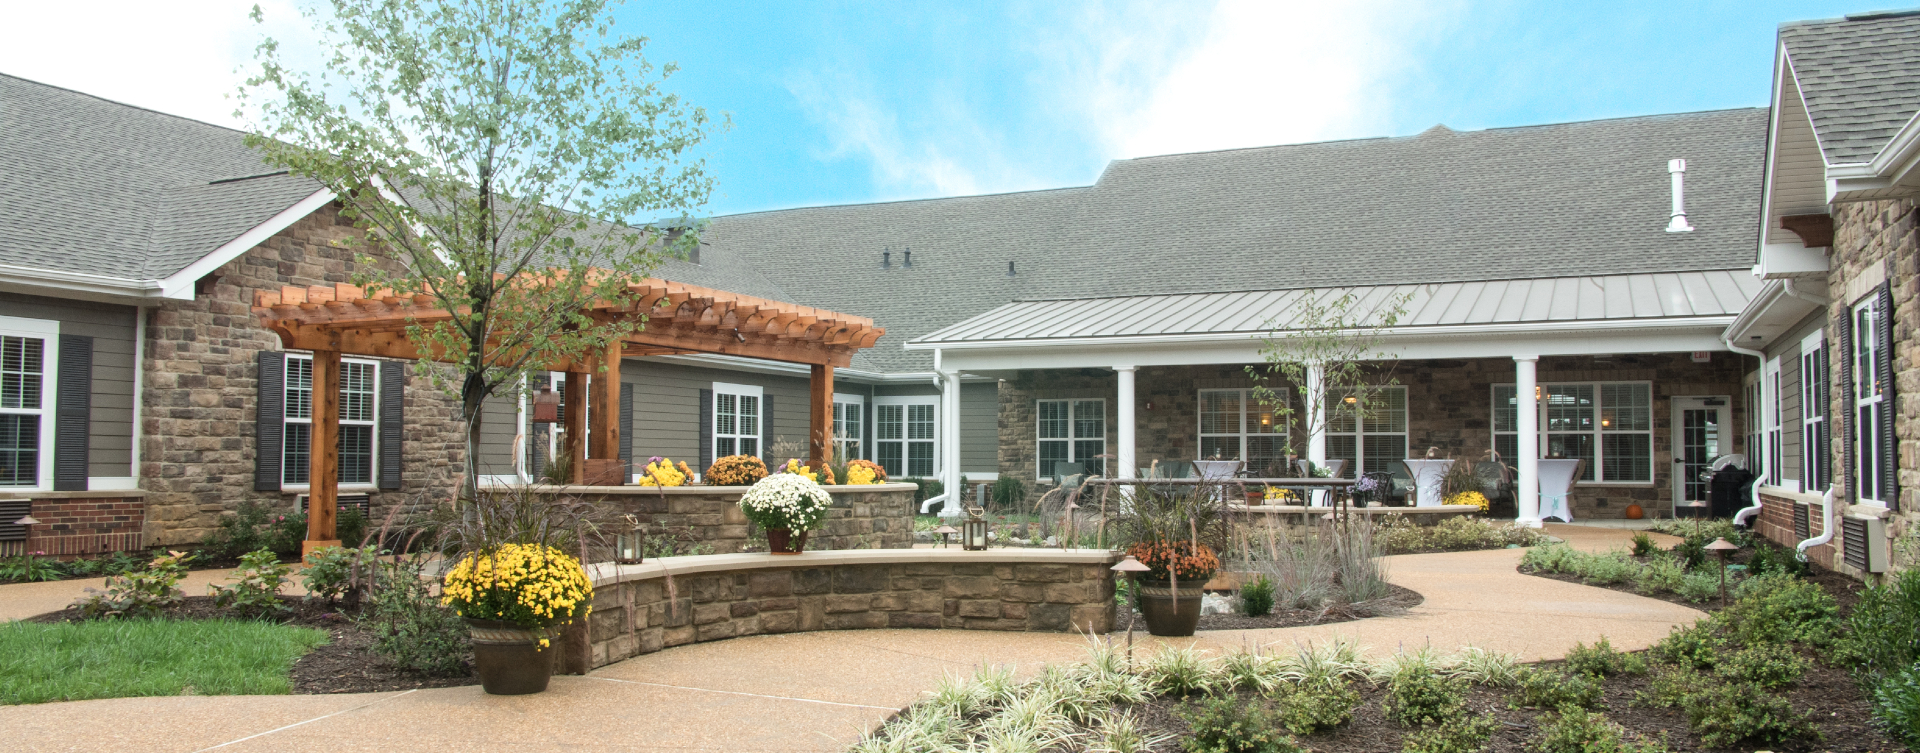 Enjoy the outdoors in a whole new light by stepping into our secure courtyard at Bickford of Spotsylvania